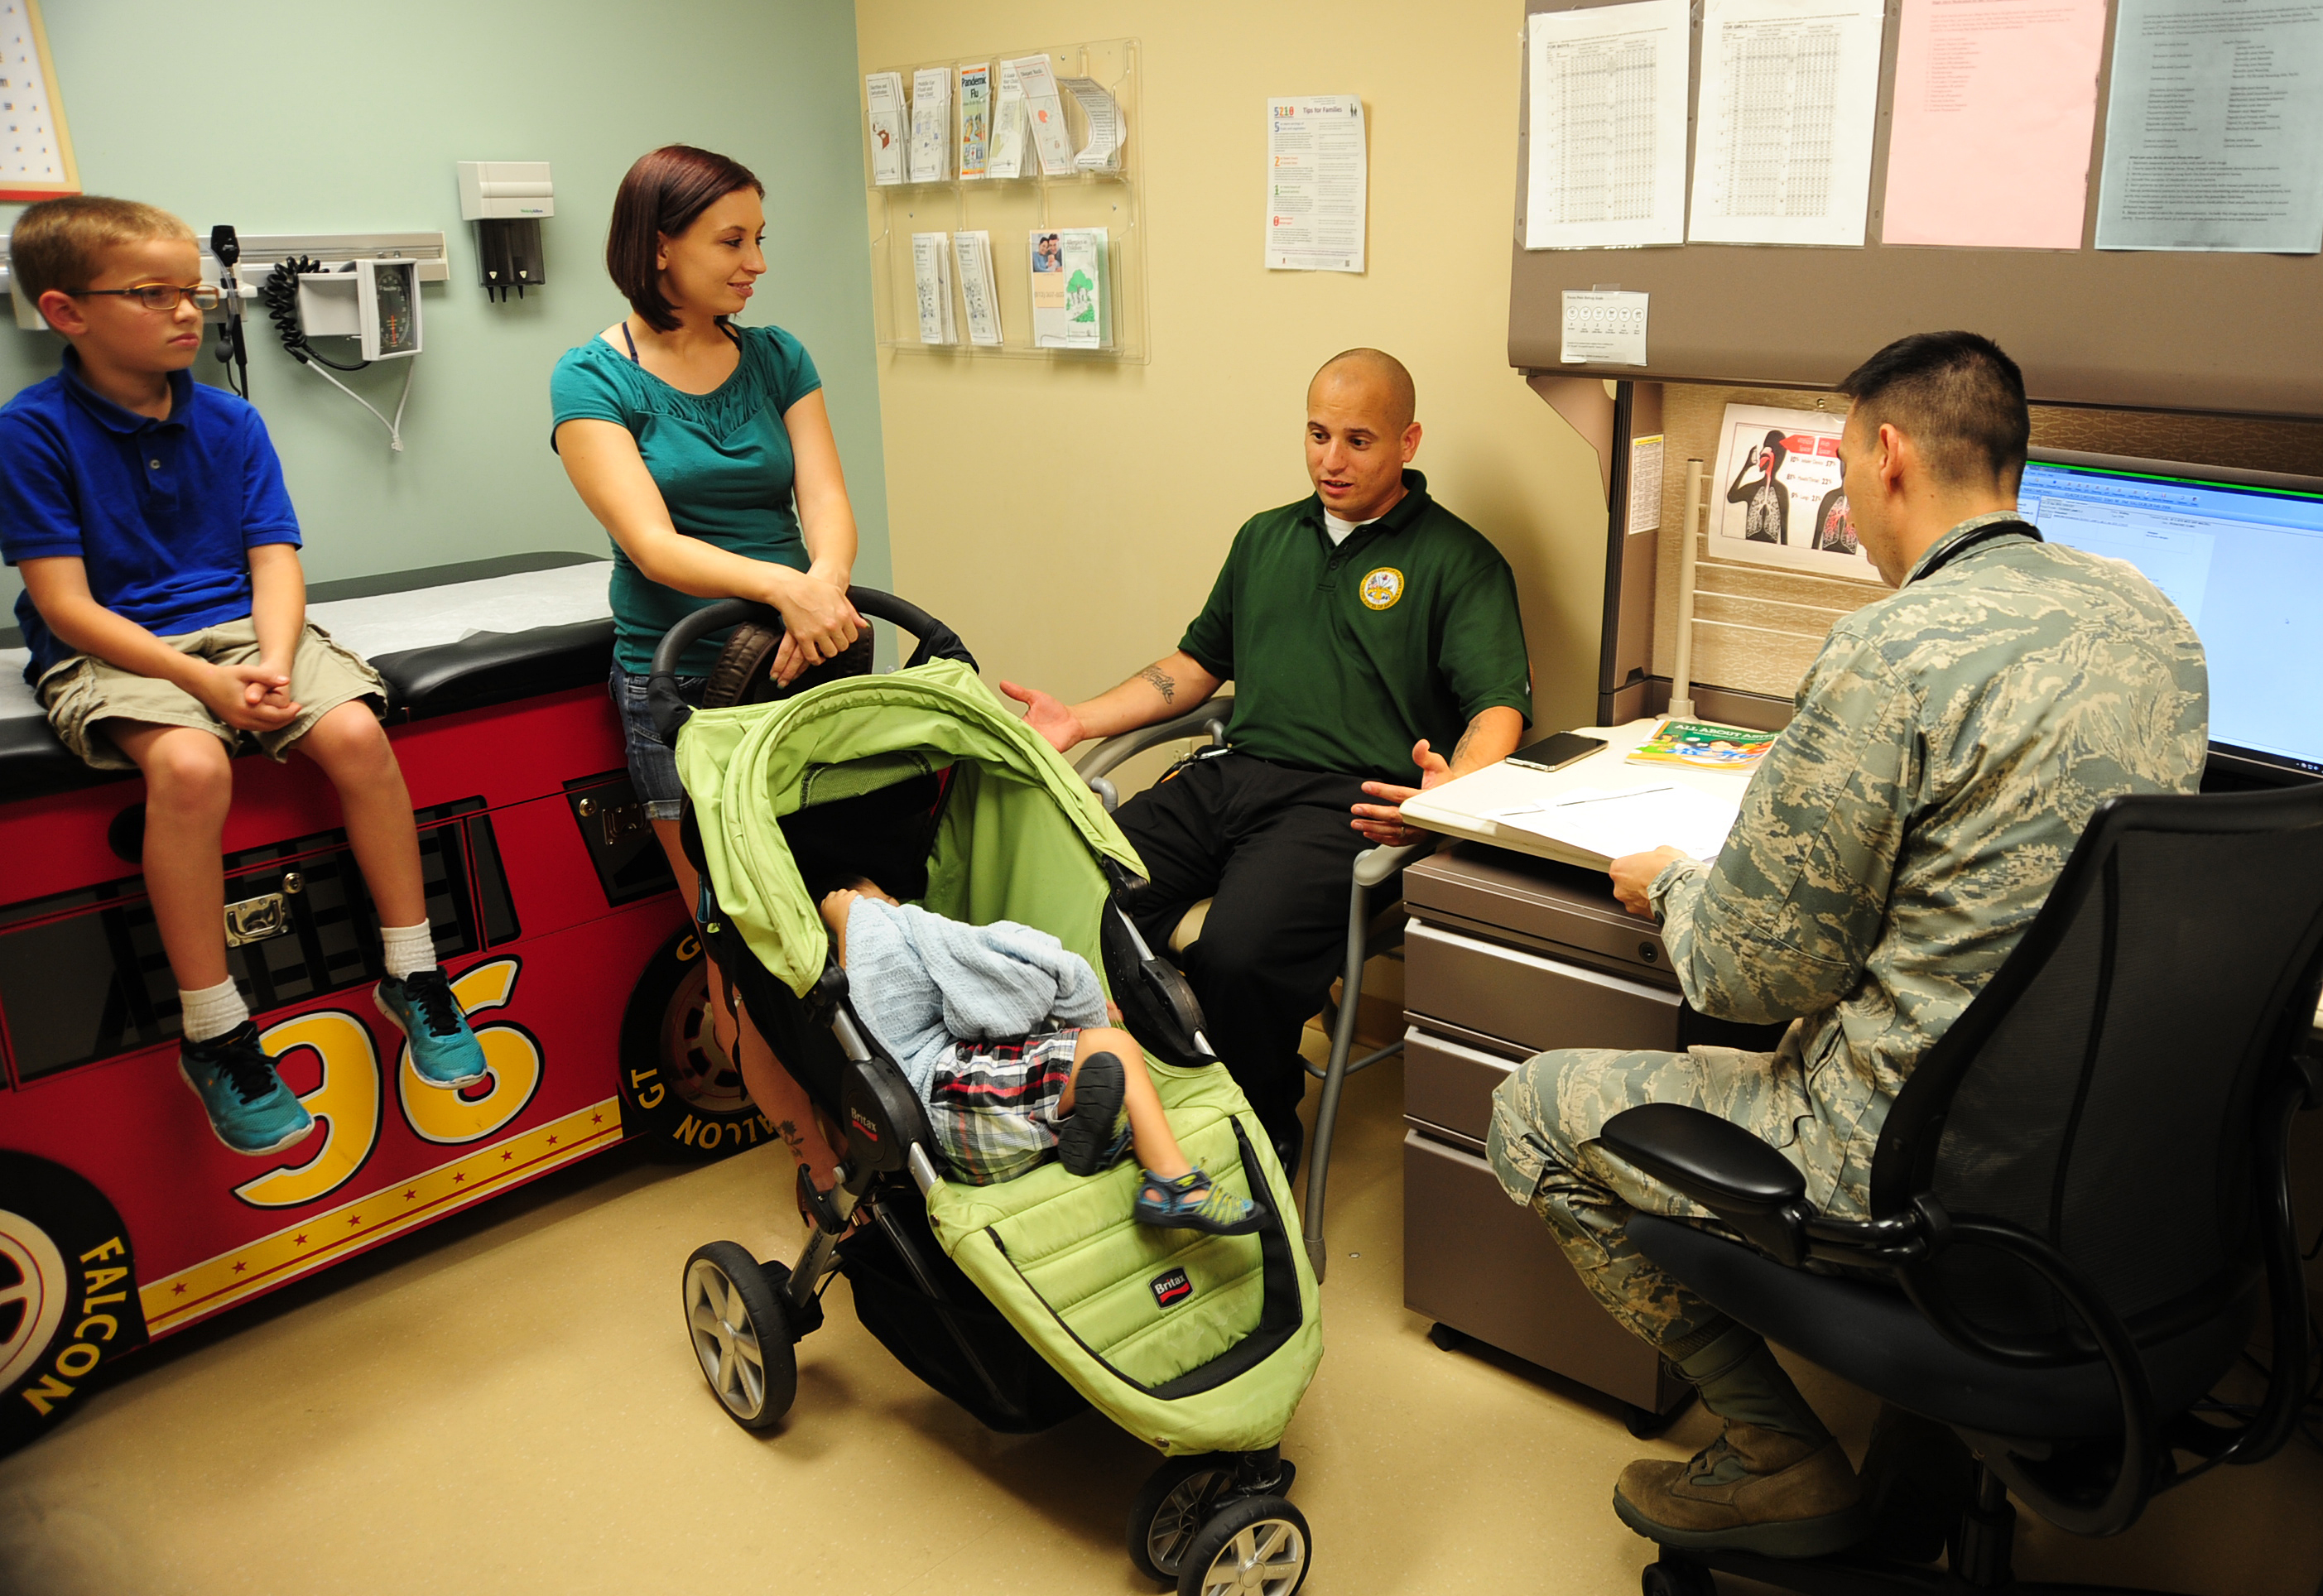 Medical Chart Review Jobs From Home: Military Children7s Health Month: Taking care of our youngest ,Chart